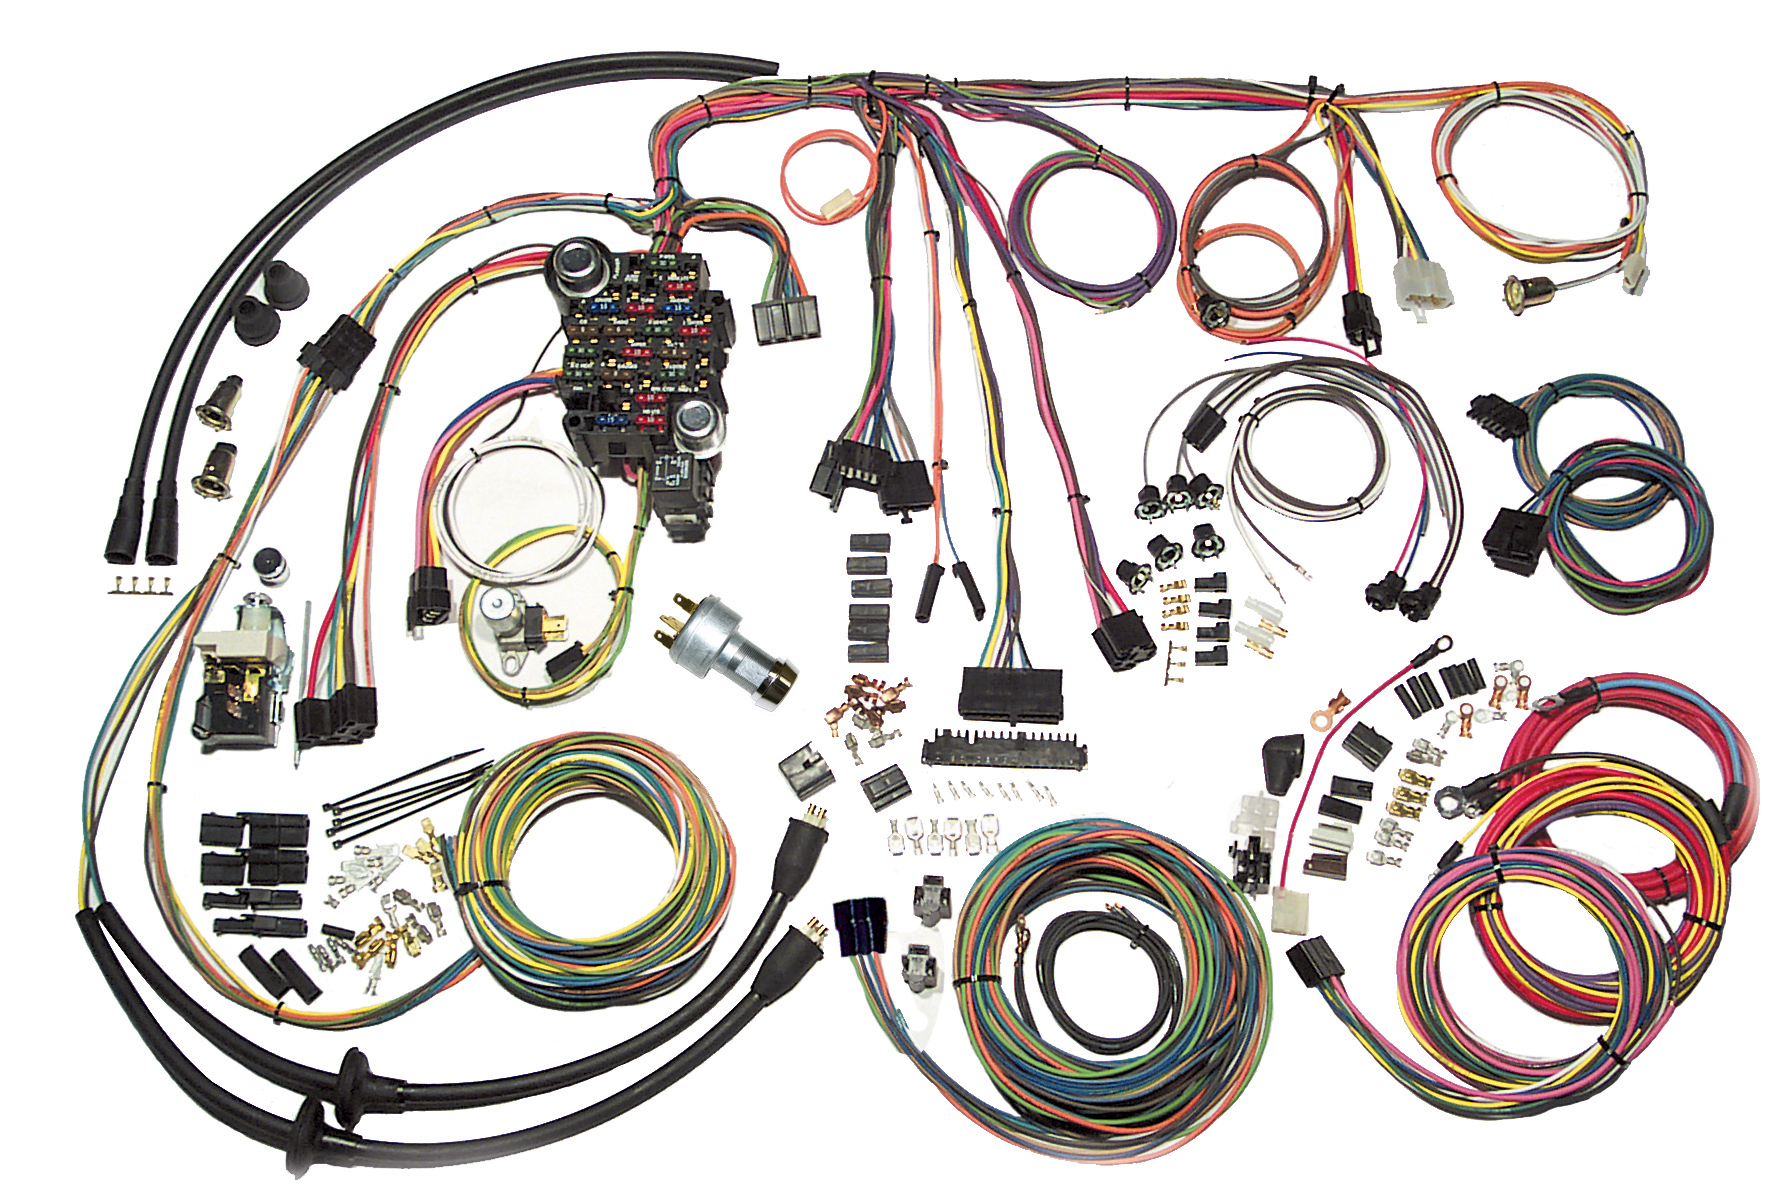 american autowire wiring harnesses now available at summit racing american autowire classic series harness for 1957 chevy